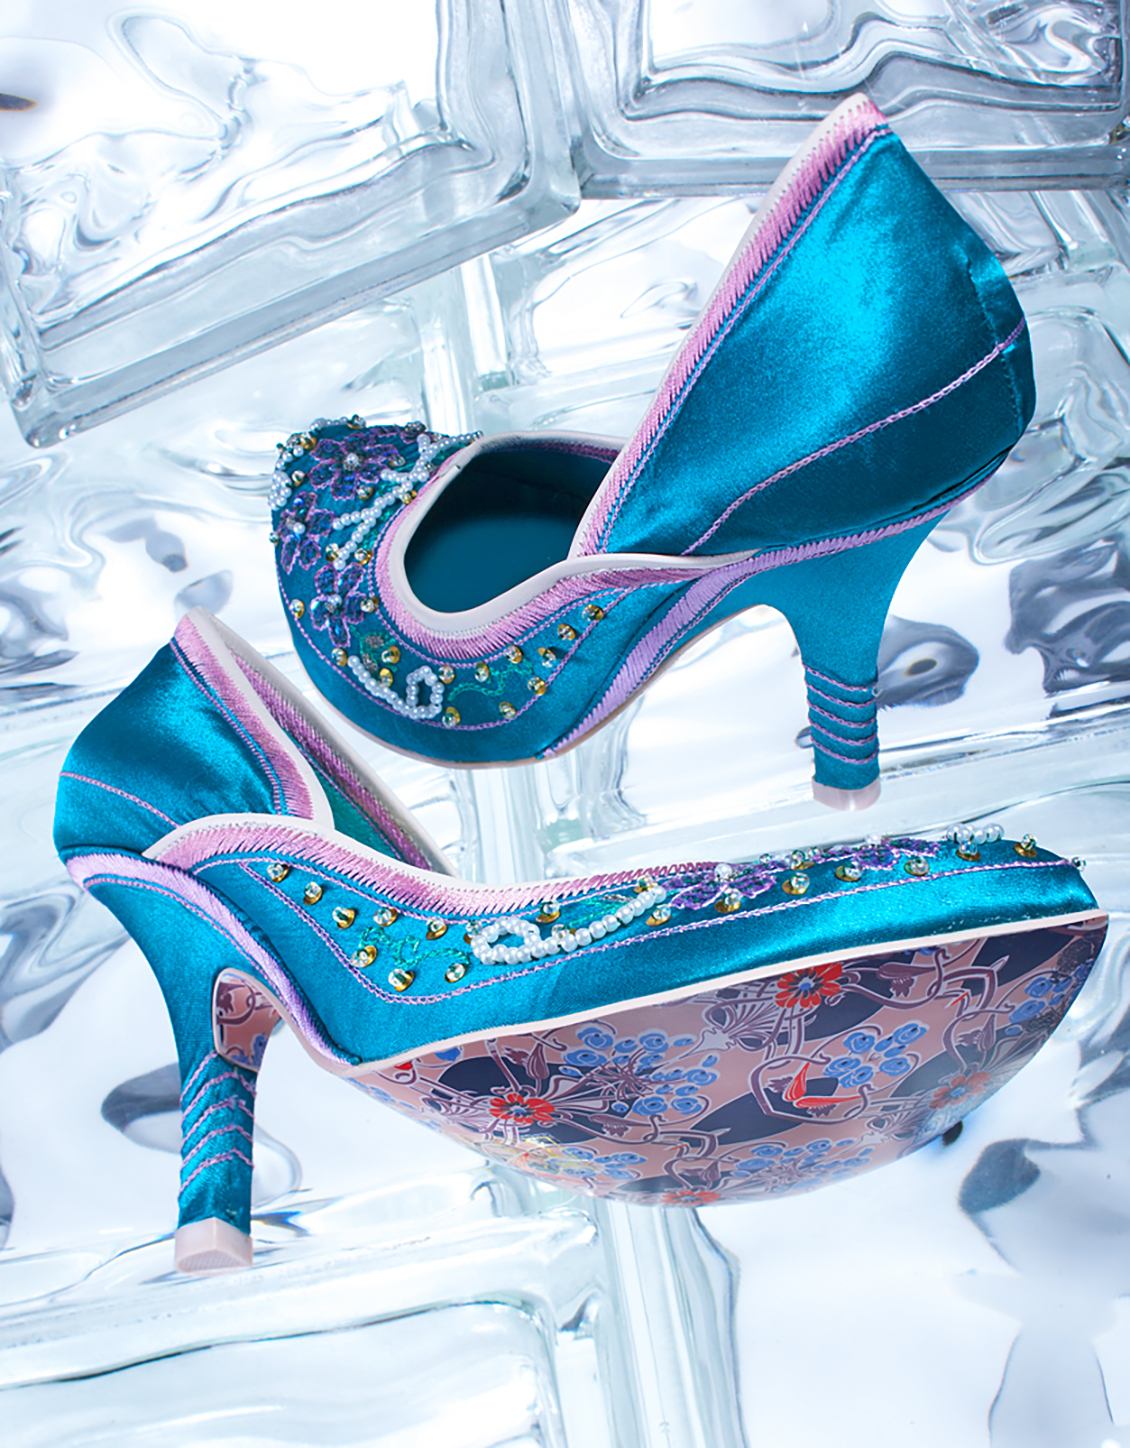 wild high heeled shoes product photo